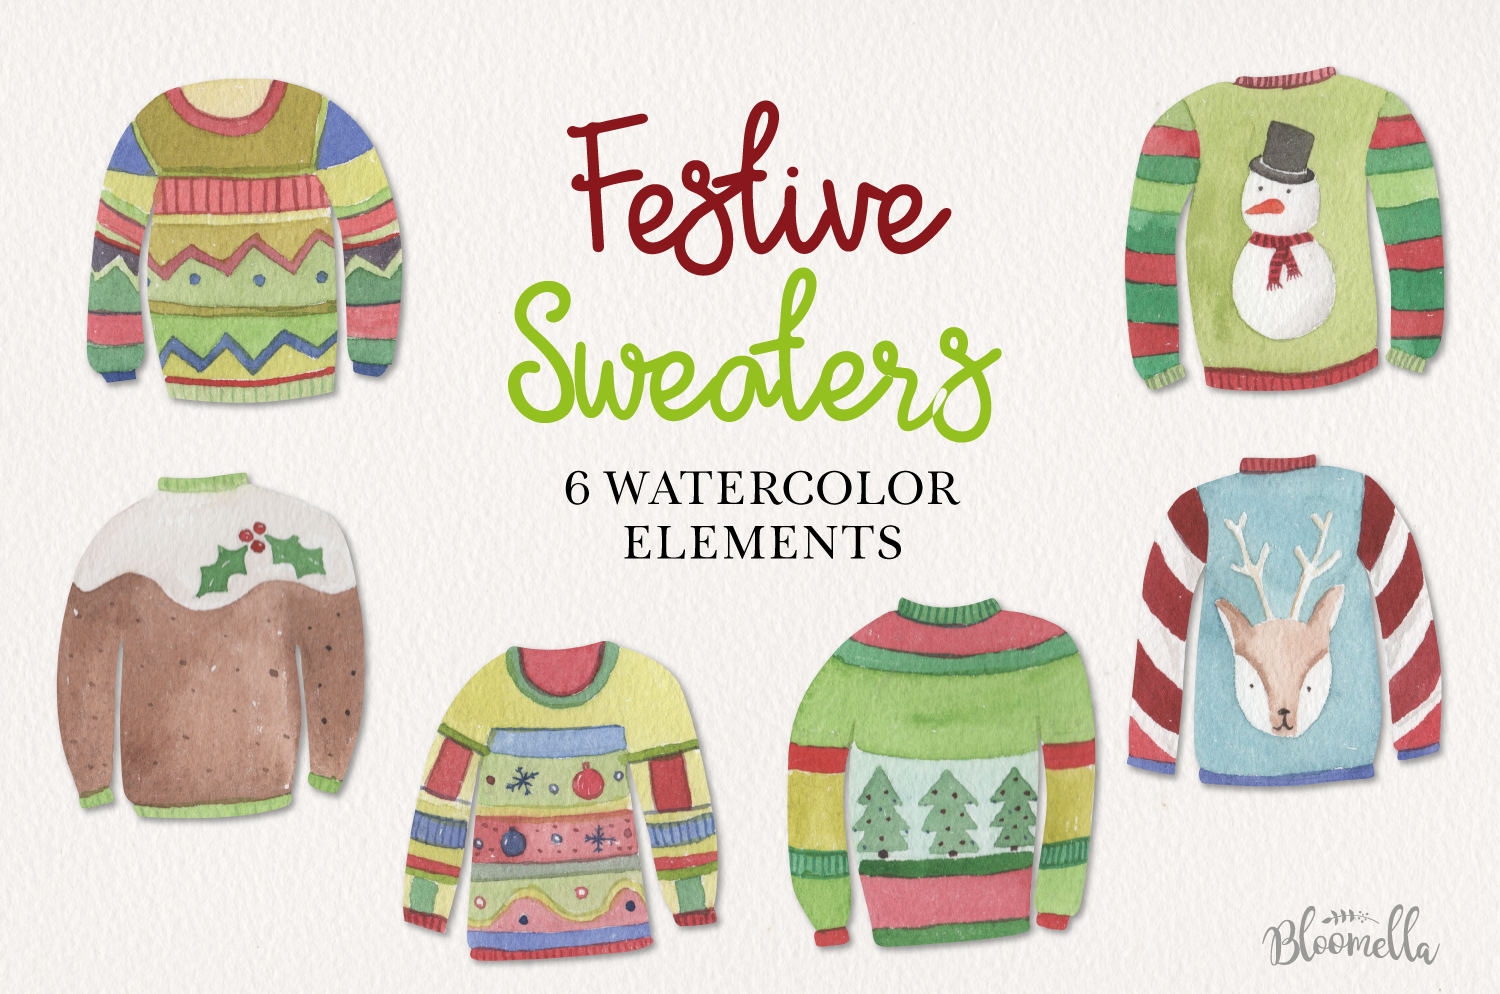 Festive Jumpers Watercolor Elements Christmas Sweaters Xmas example image 1